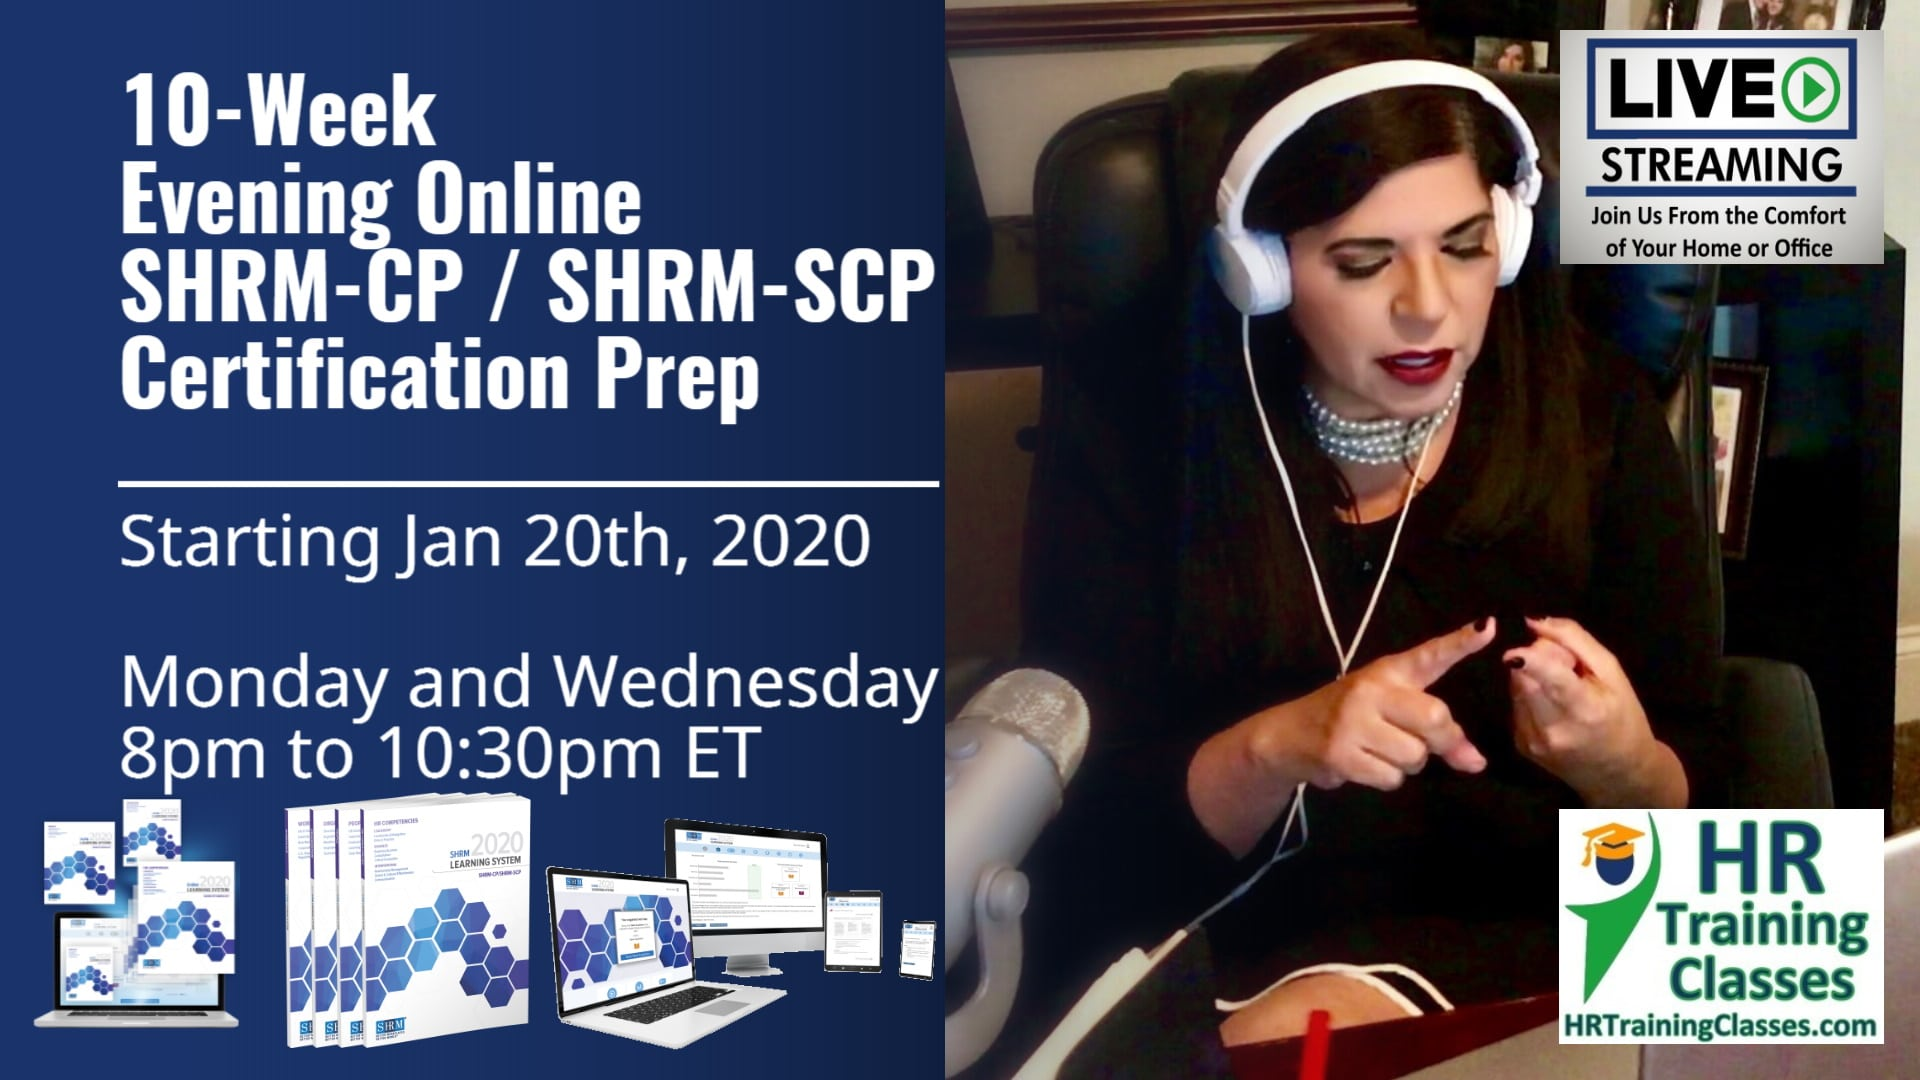 10 Week Live Online SHRM-CP, SHRM-SCP Exam Prep starting 1-20-20 and led by Elga lejarza-Penn, aPHR, PHR, SPHR, SHRM-CP, SHRM-SCP 8-1030pm